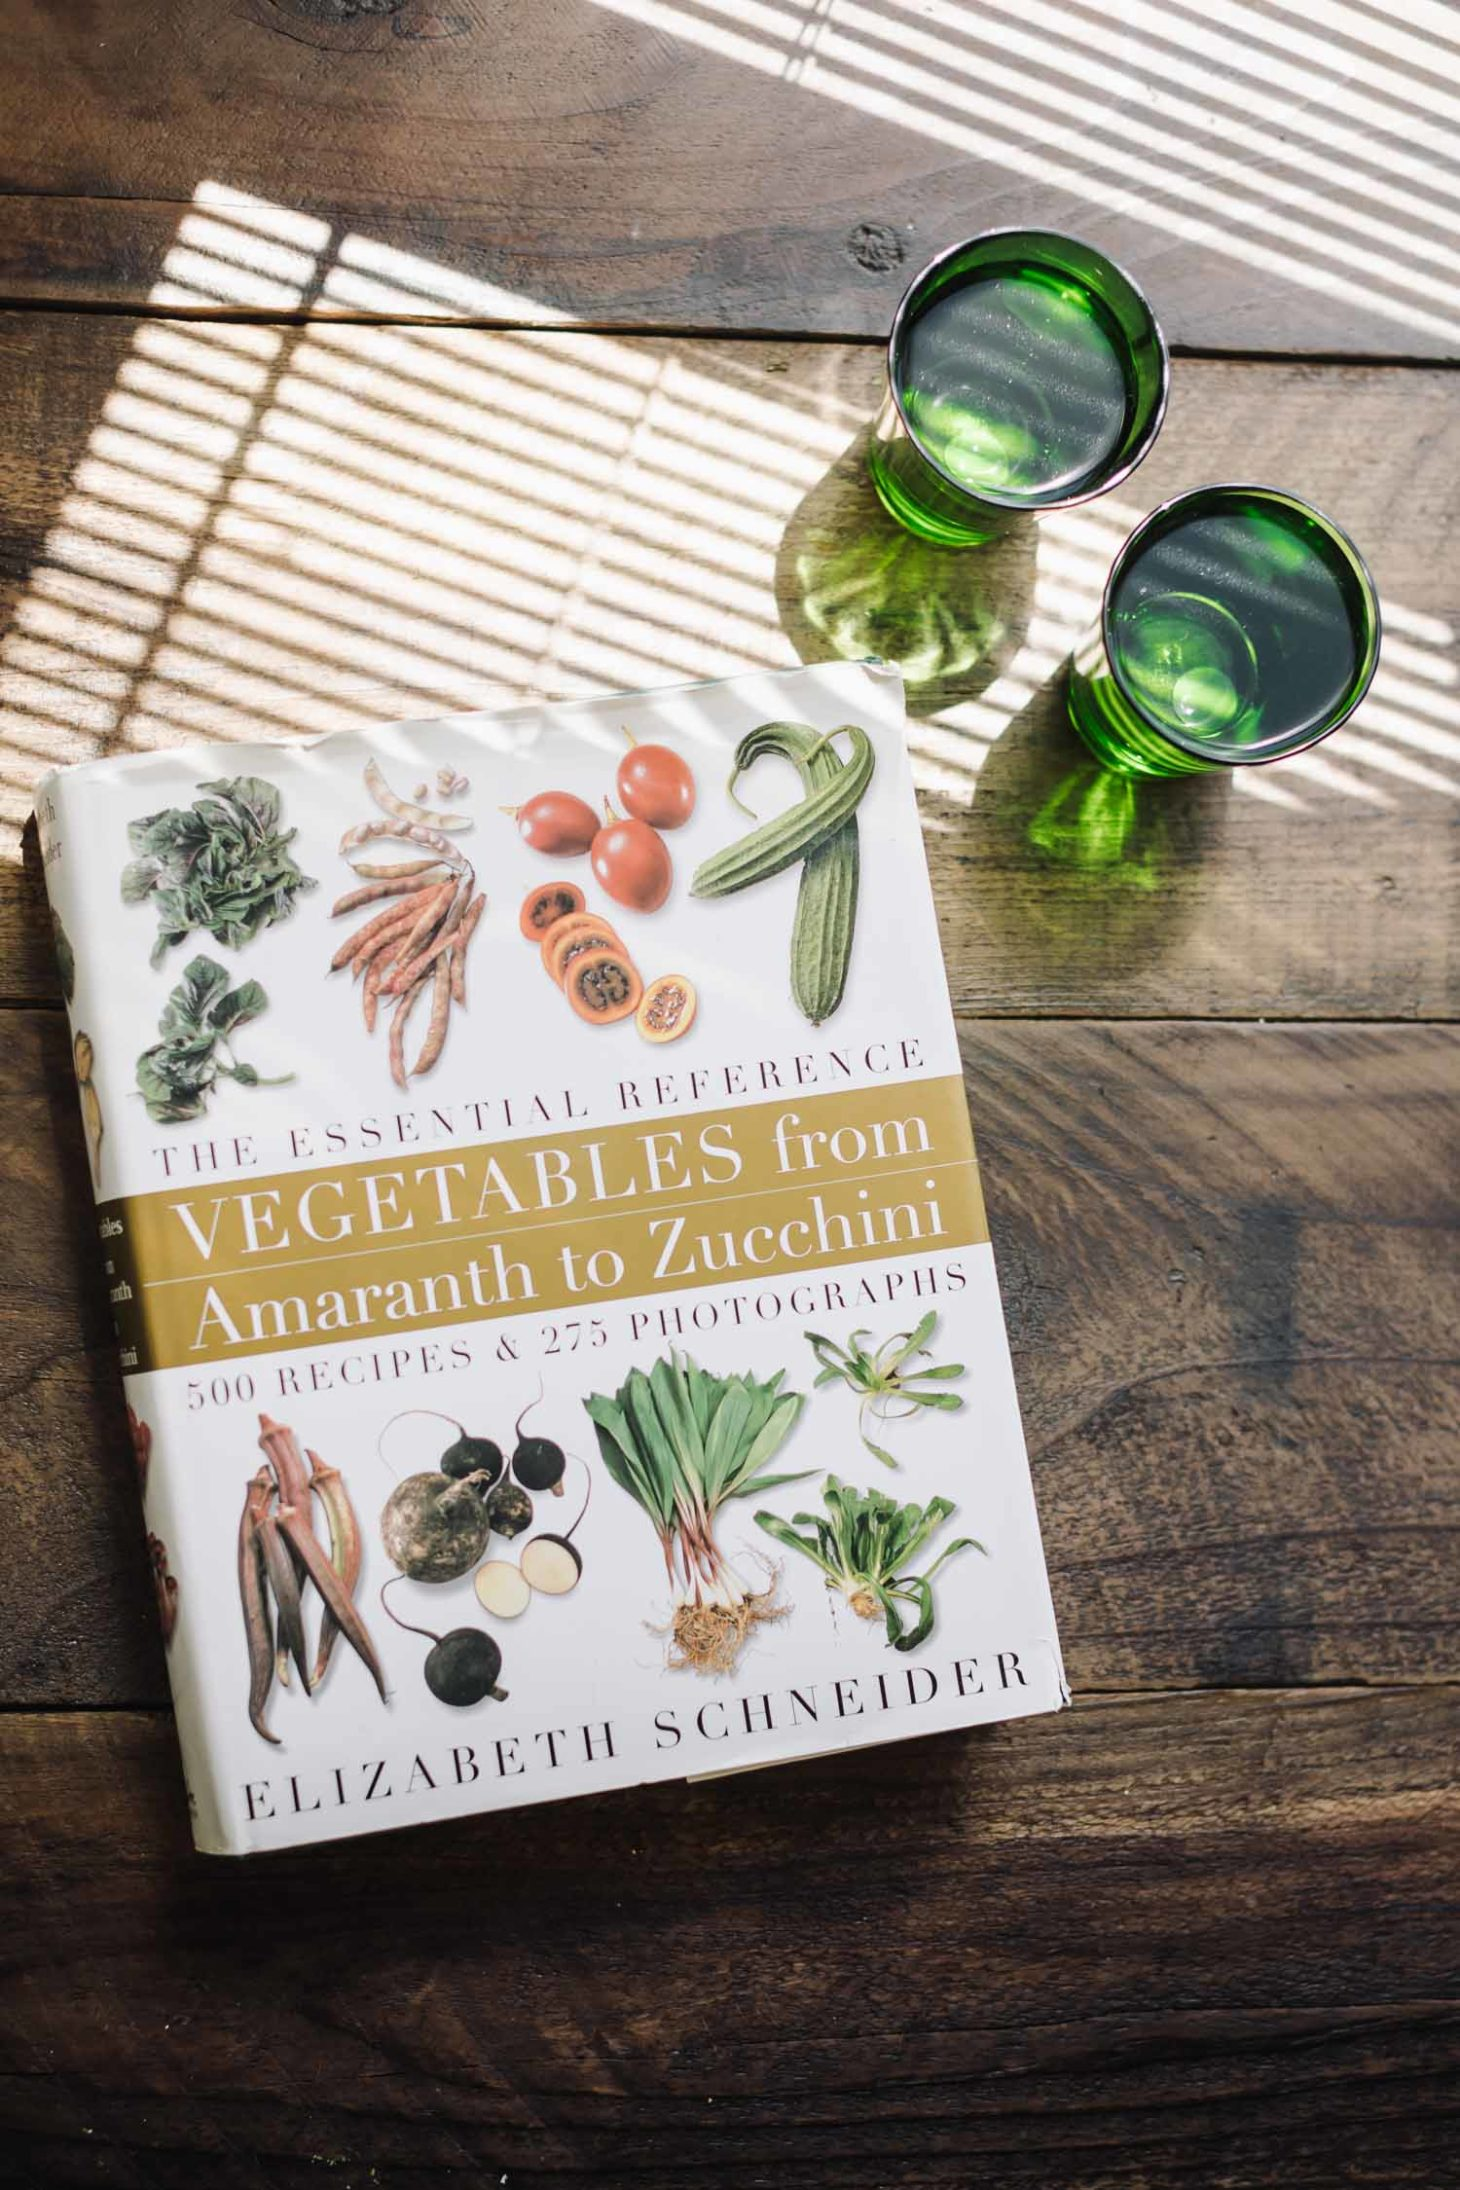 Vegetables from Amaranth to Zucchini: The Essential Reference by Elizabeth Schneider